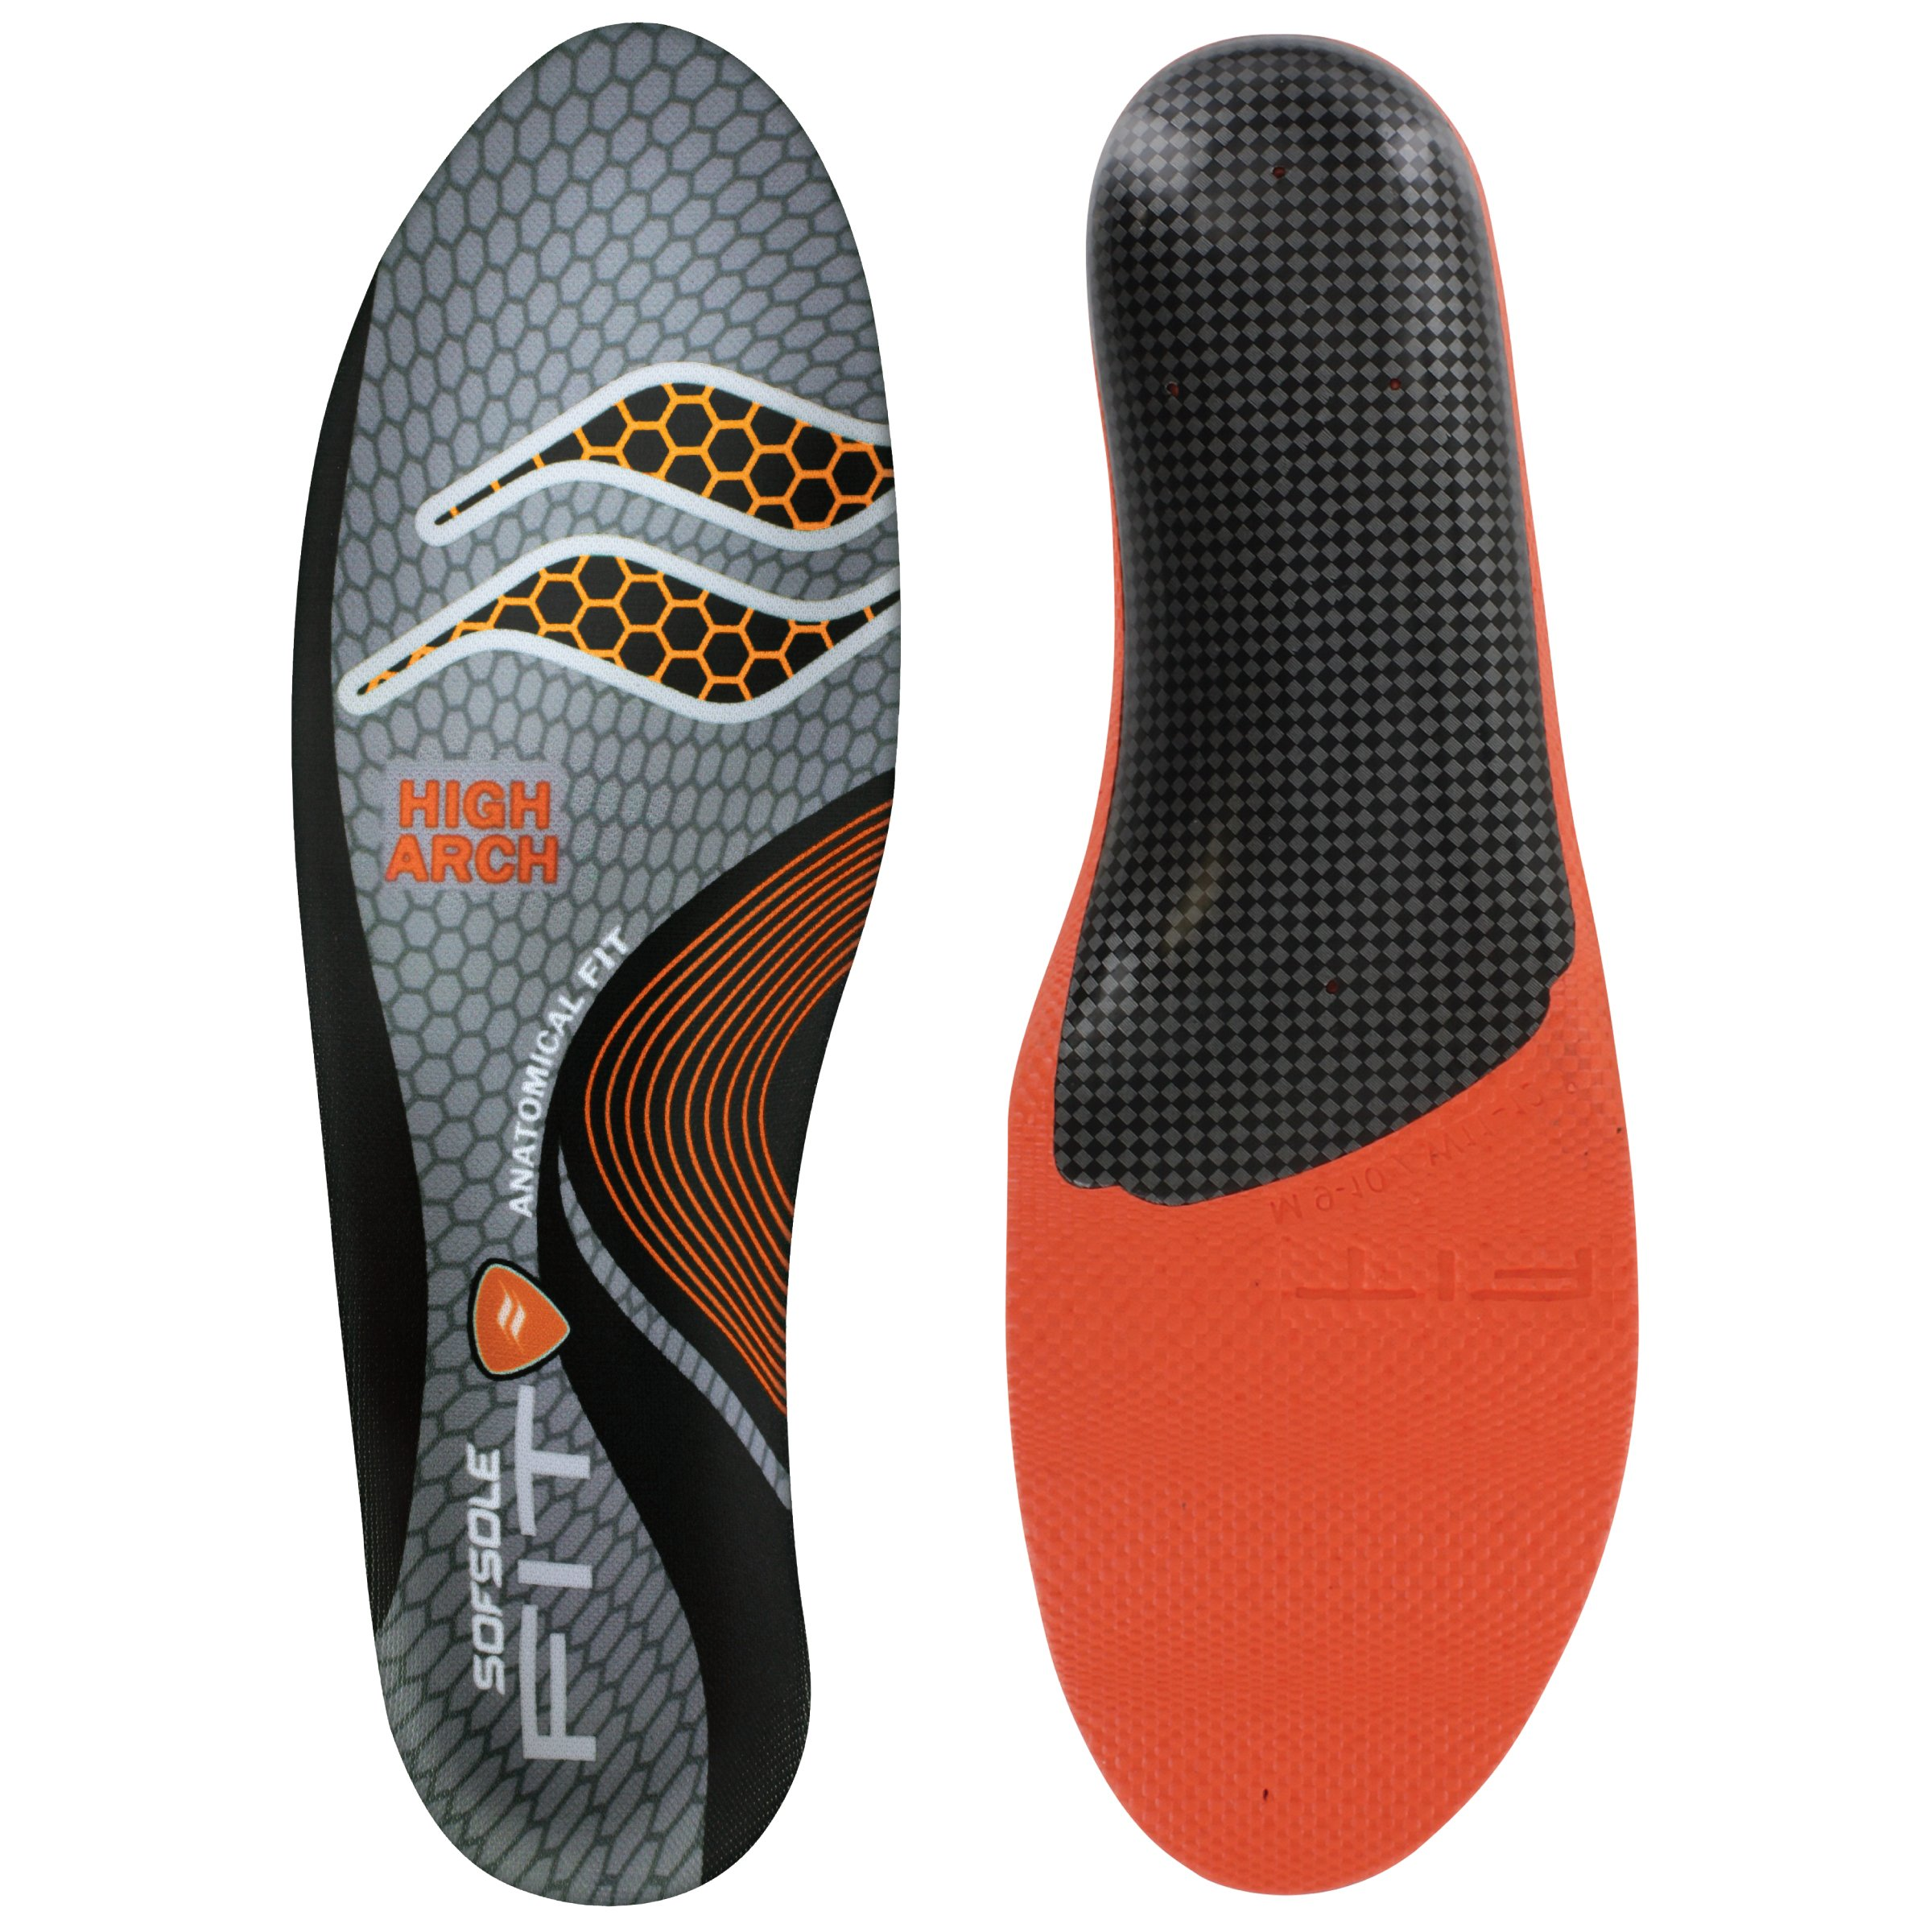 Sof Sole Women S Arch Support And Cushion Insole Shoe